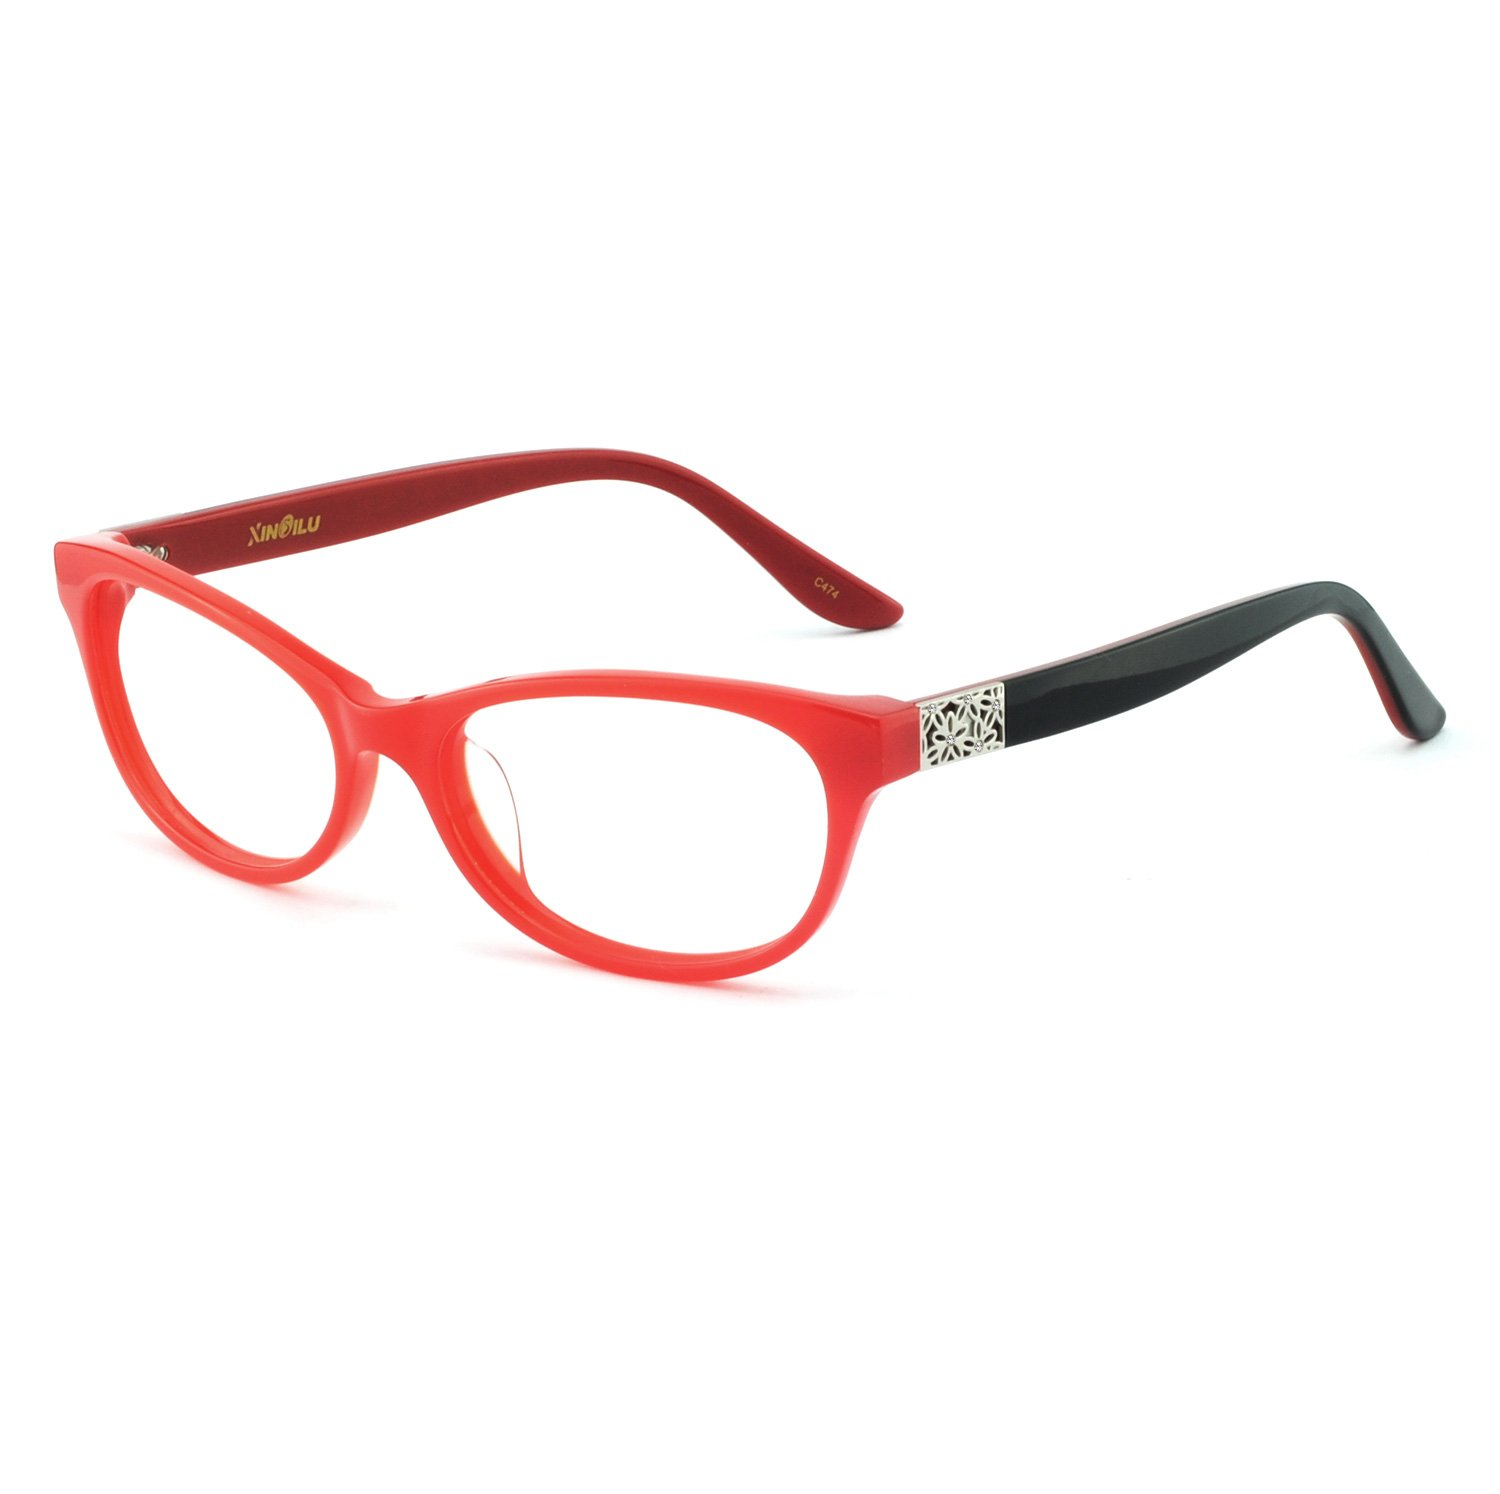 OCCI CHIARI Fashion Acetate Frame Rectangular Eyeglasses with Clear Lenses for Womens (Red-Black, 54)